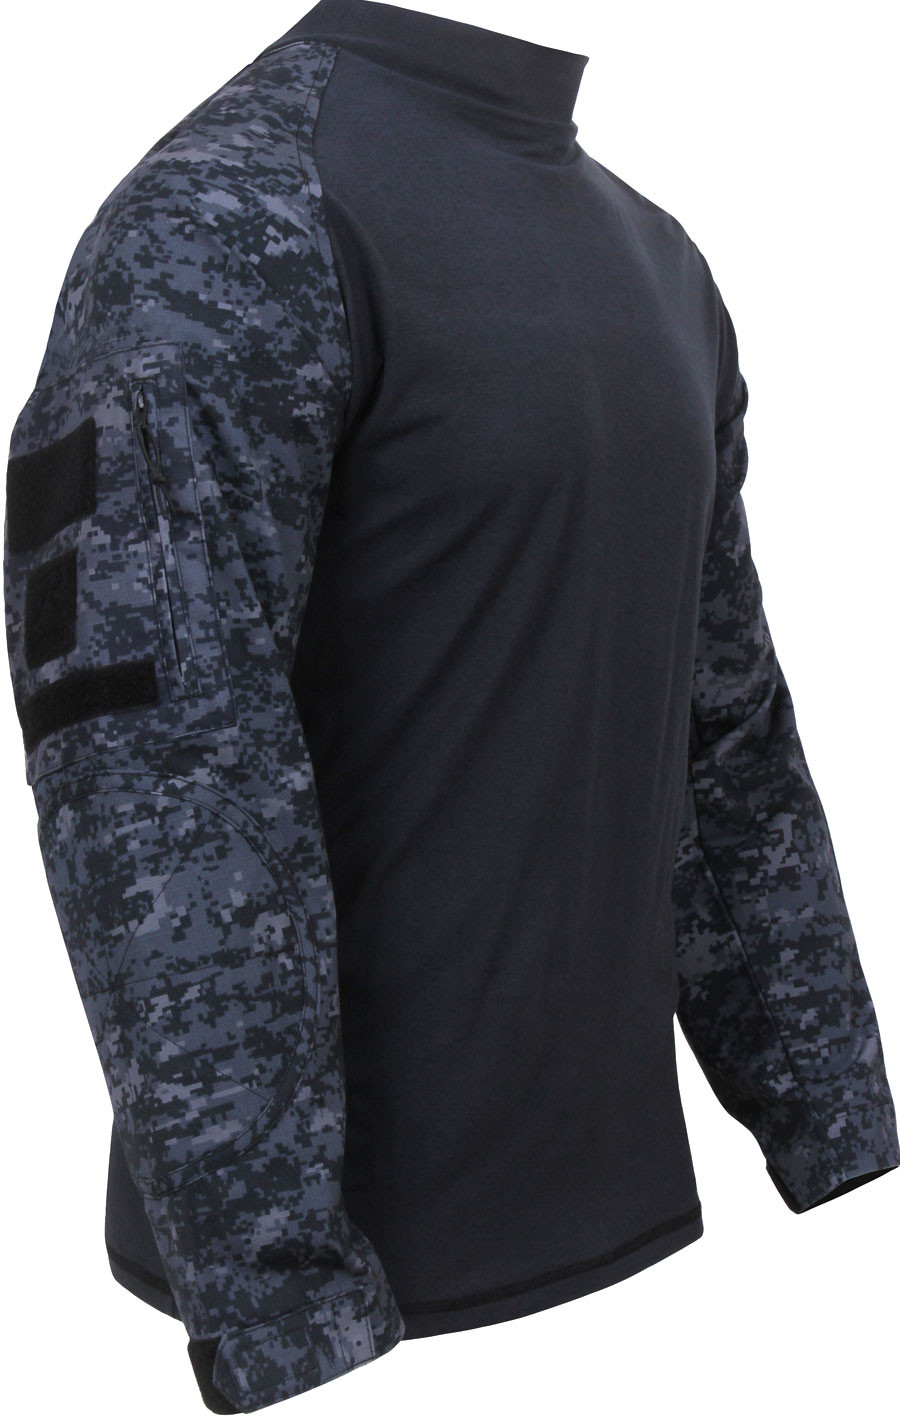 Midnight Digital Camouflage Military Long Sleeve Tactical